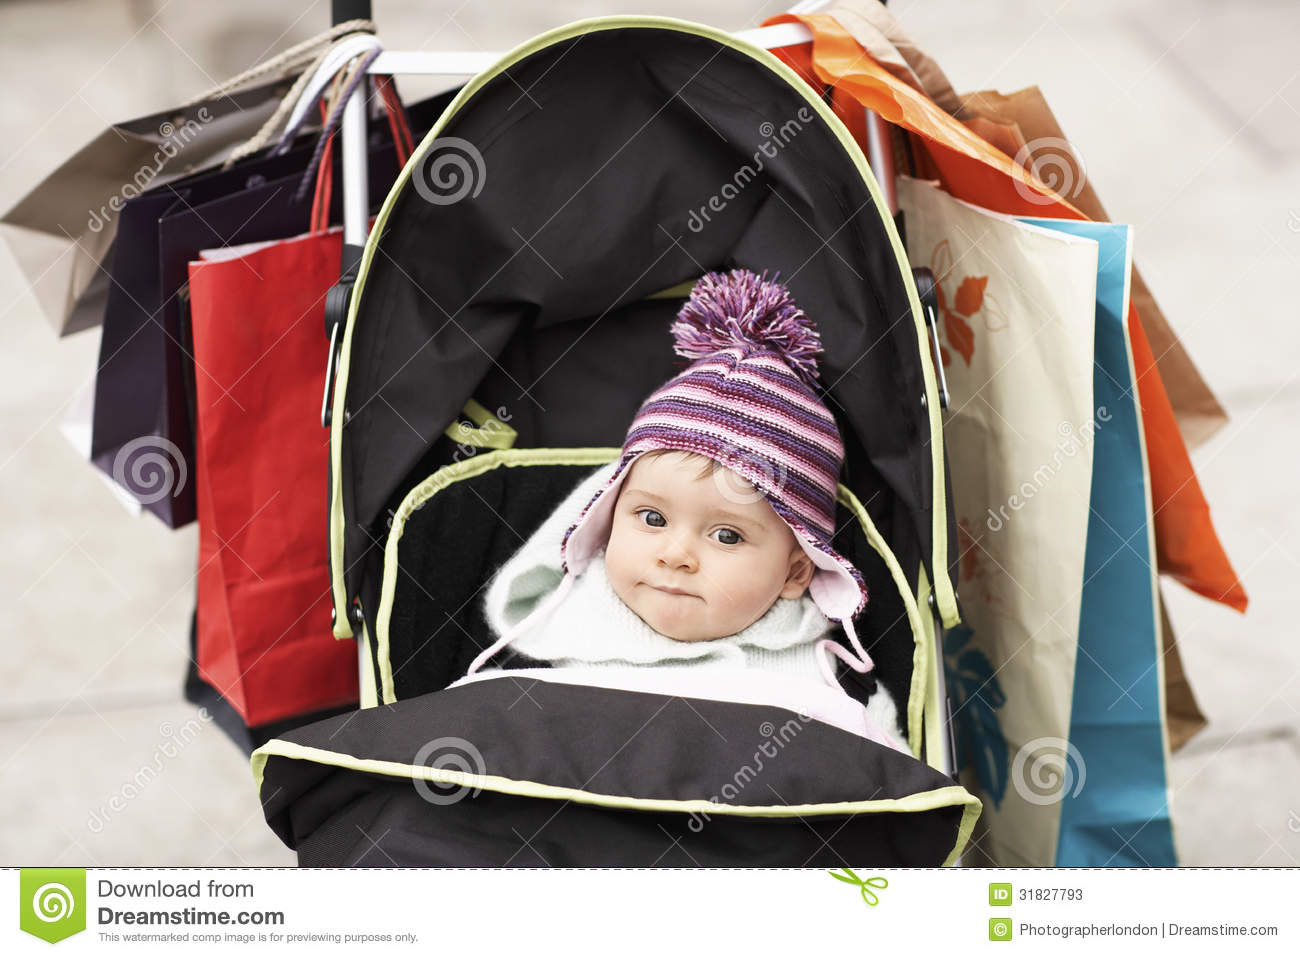 Child With A Pram Cute Baby In Stroller Hung With Shopping Bags Stock Image